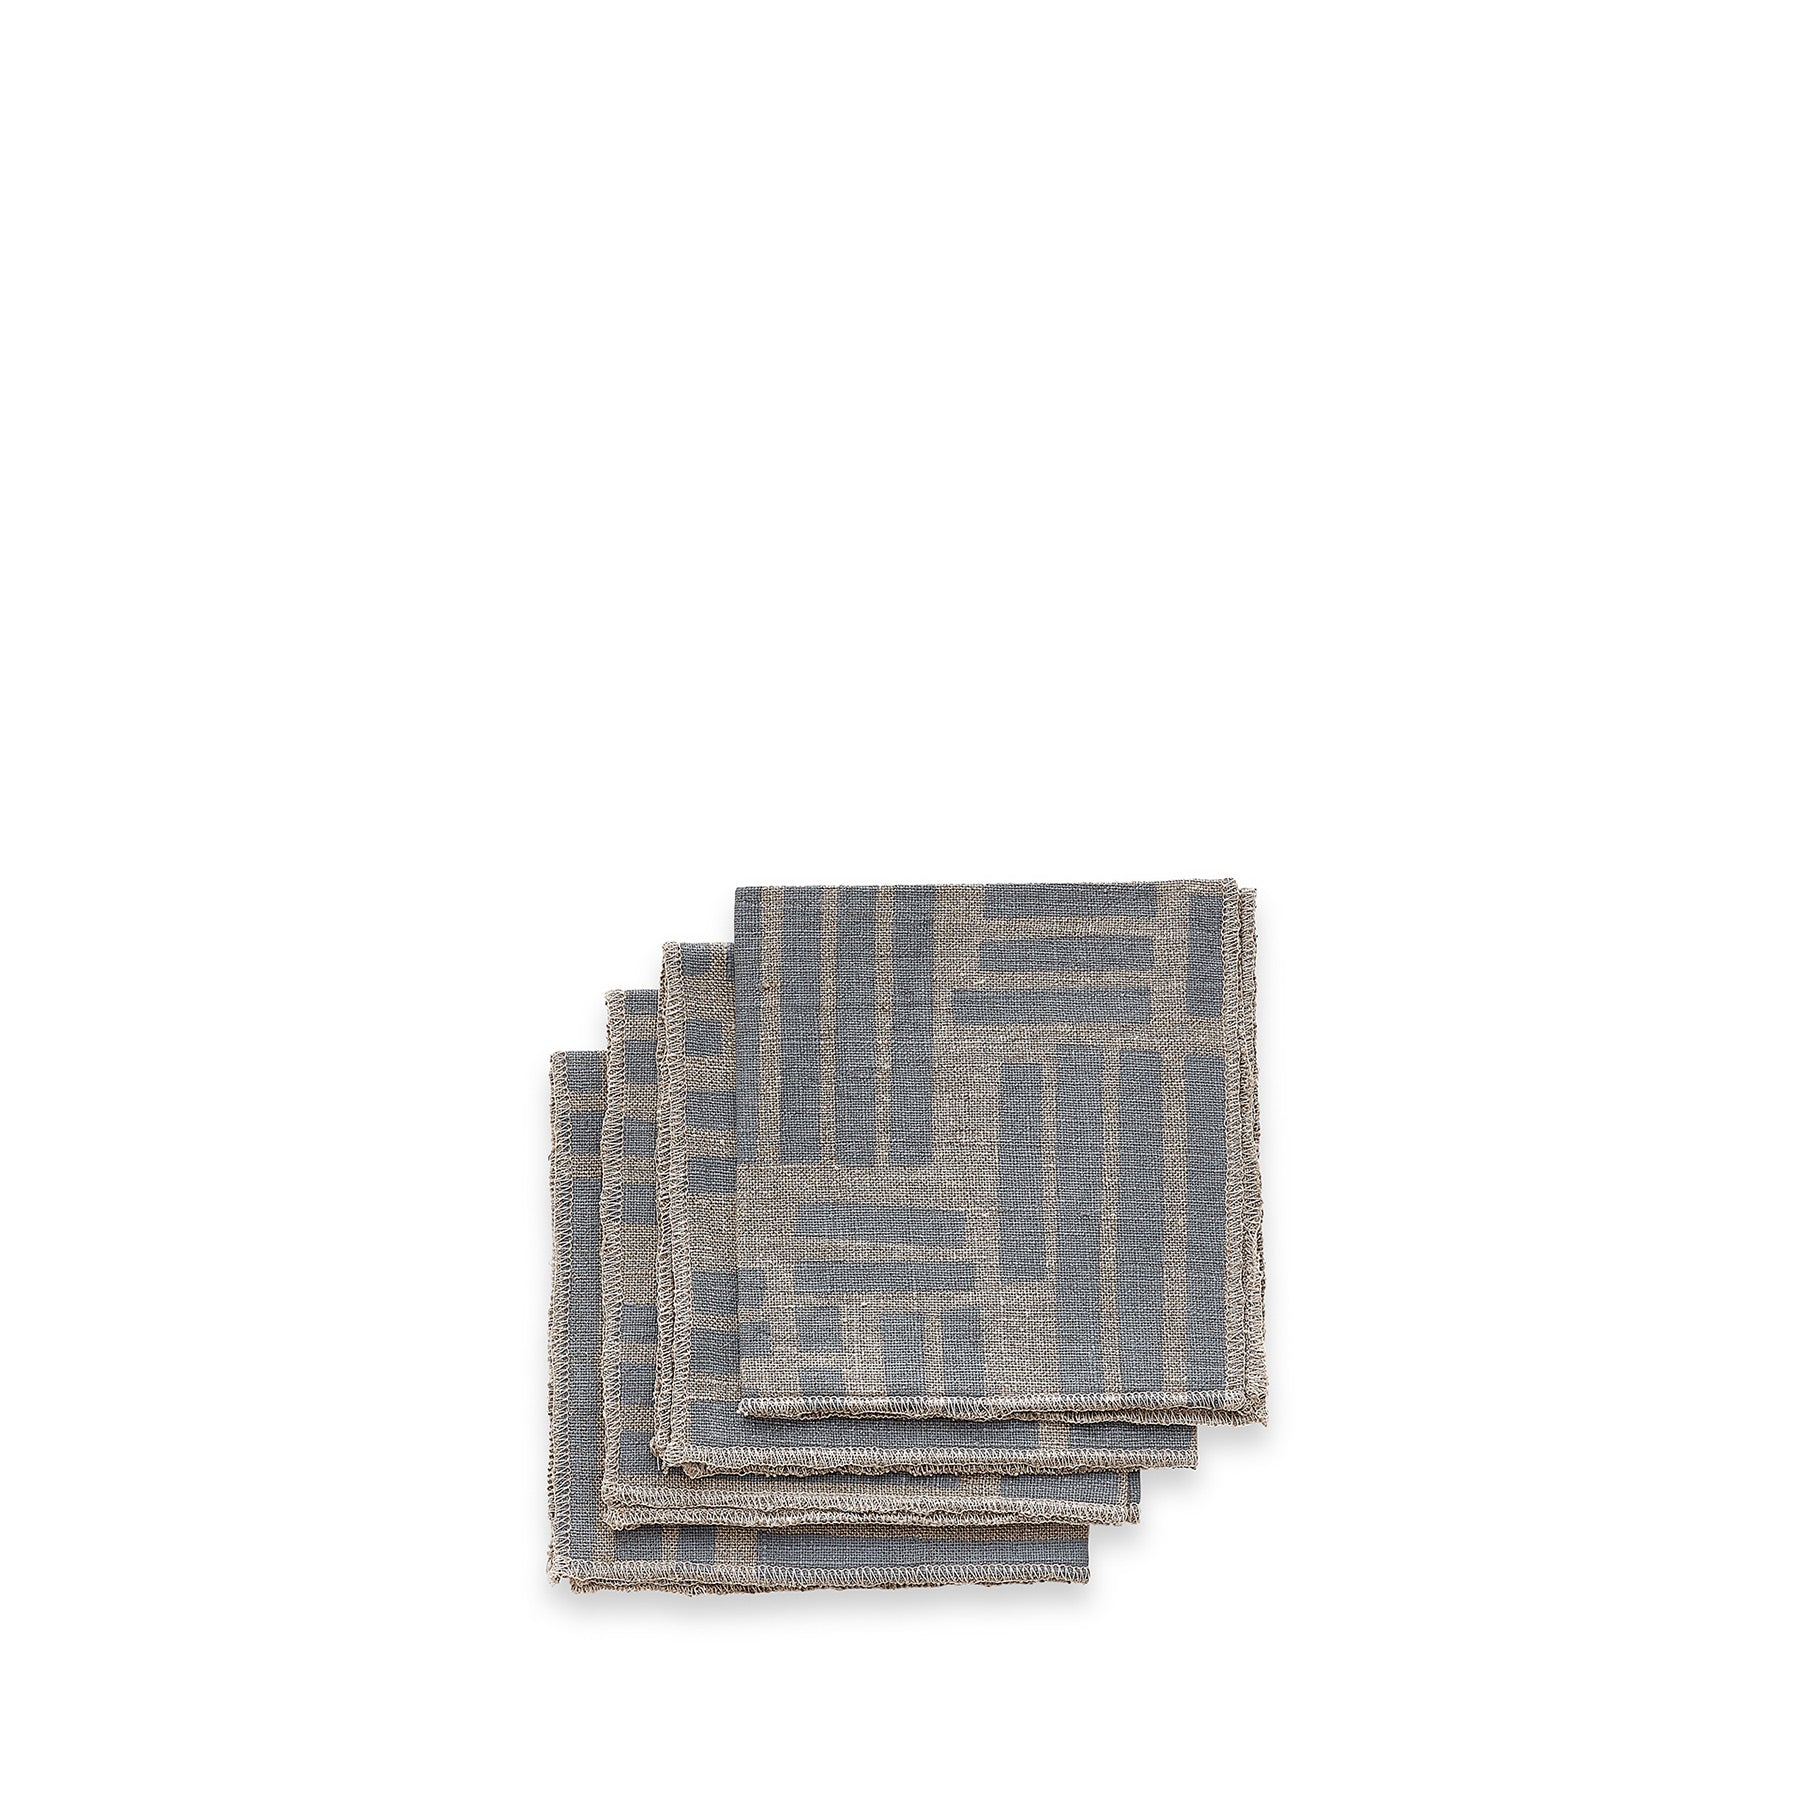 Maze Cocktail Napkins in Grey (Set of 4) Zoom Image 1